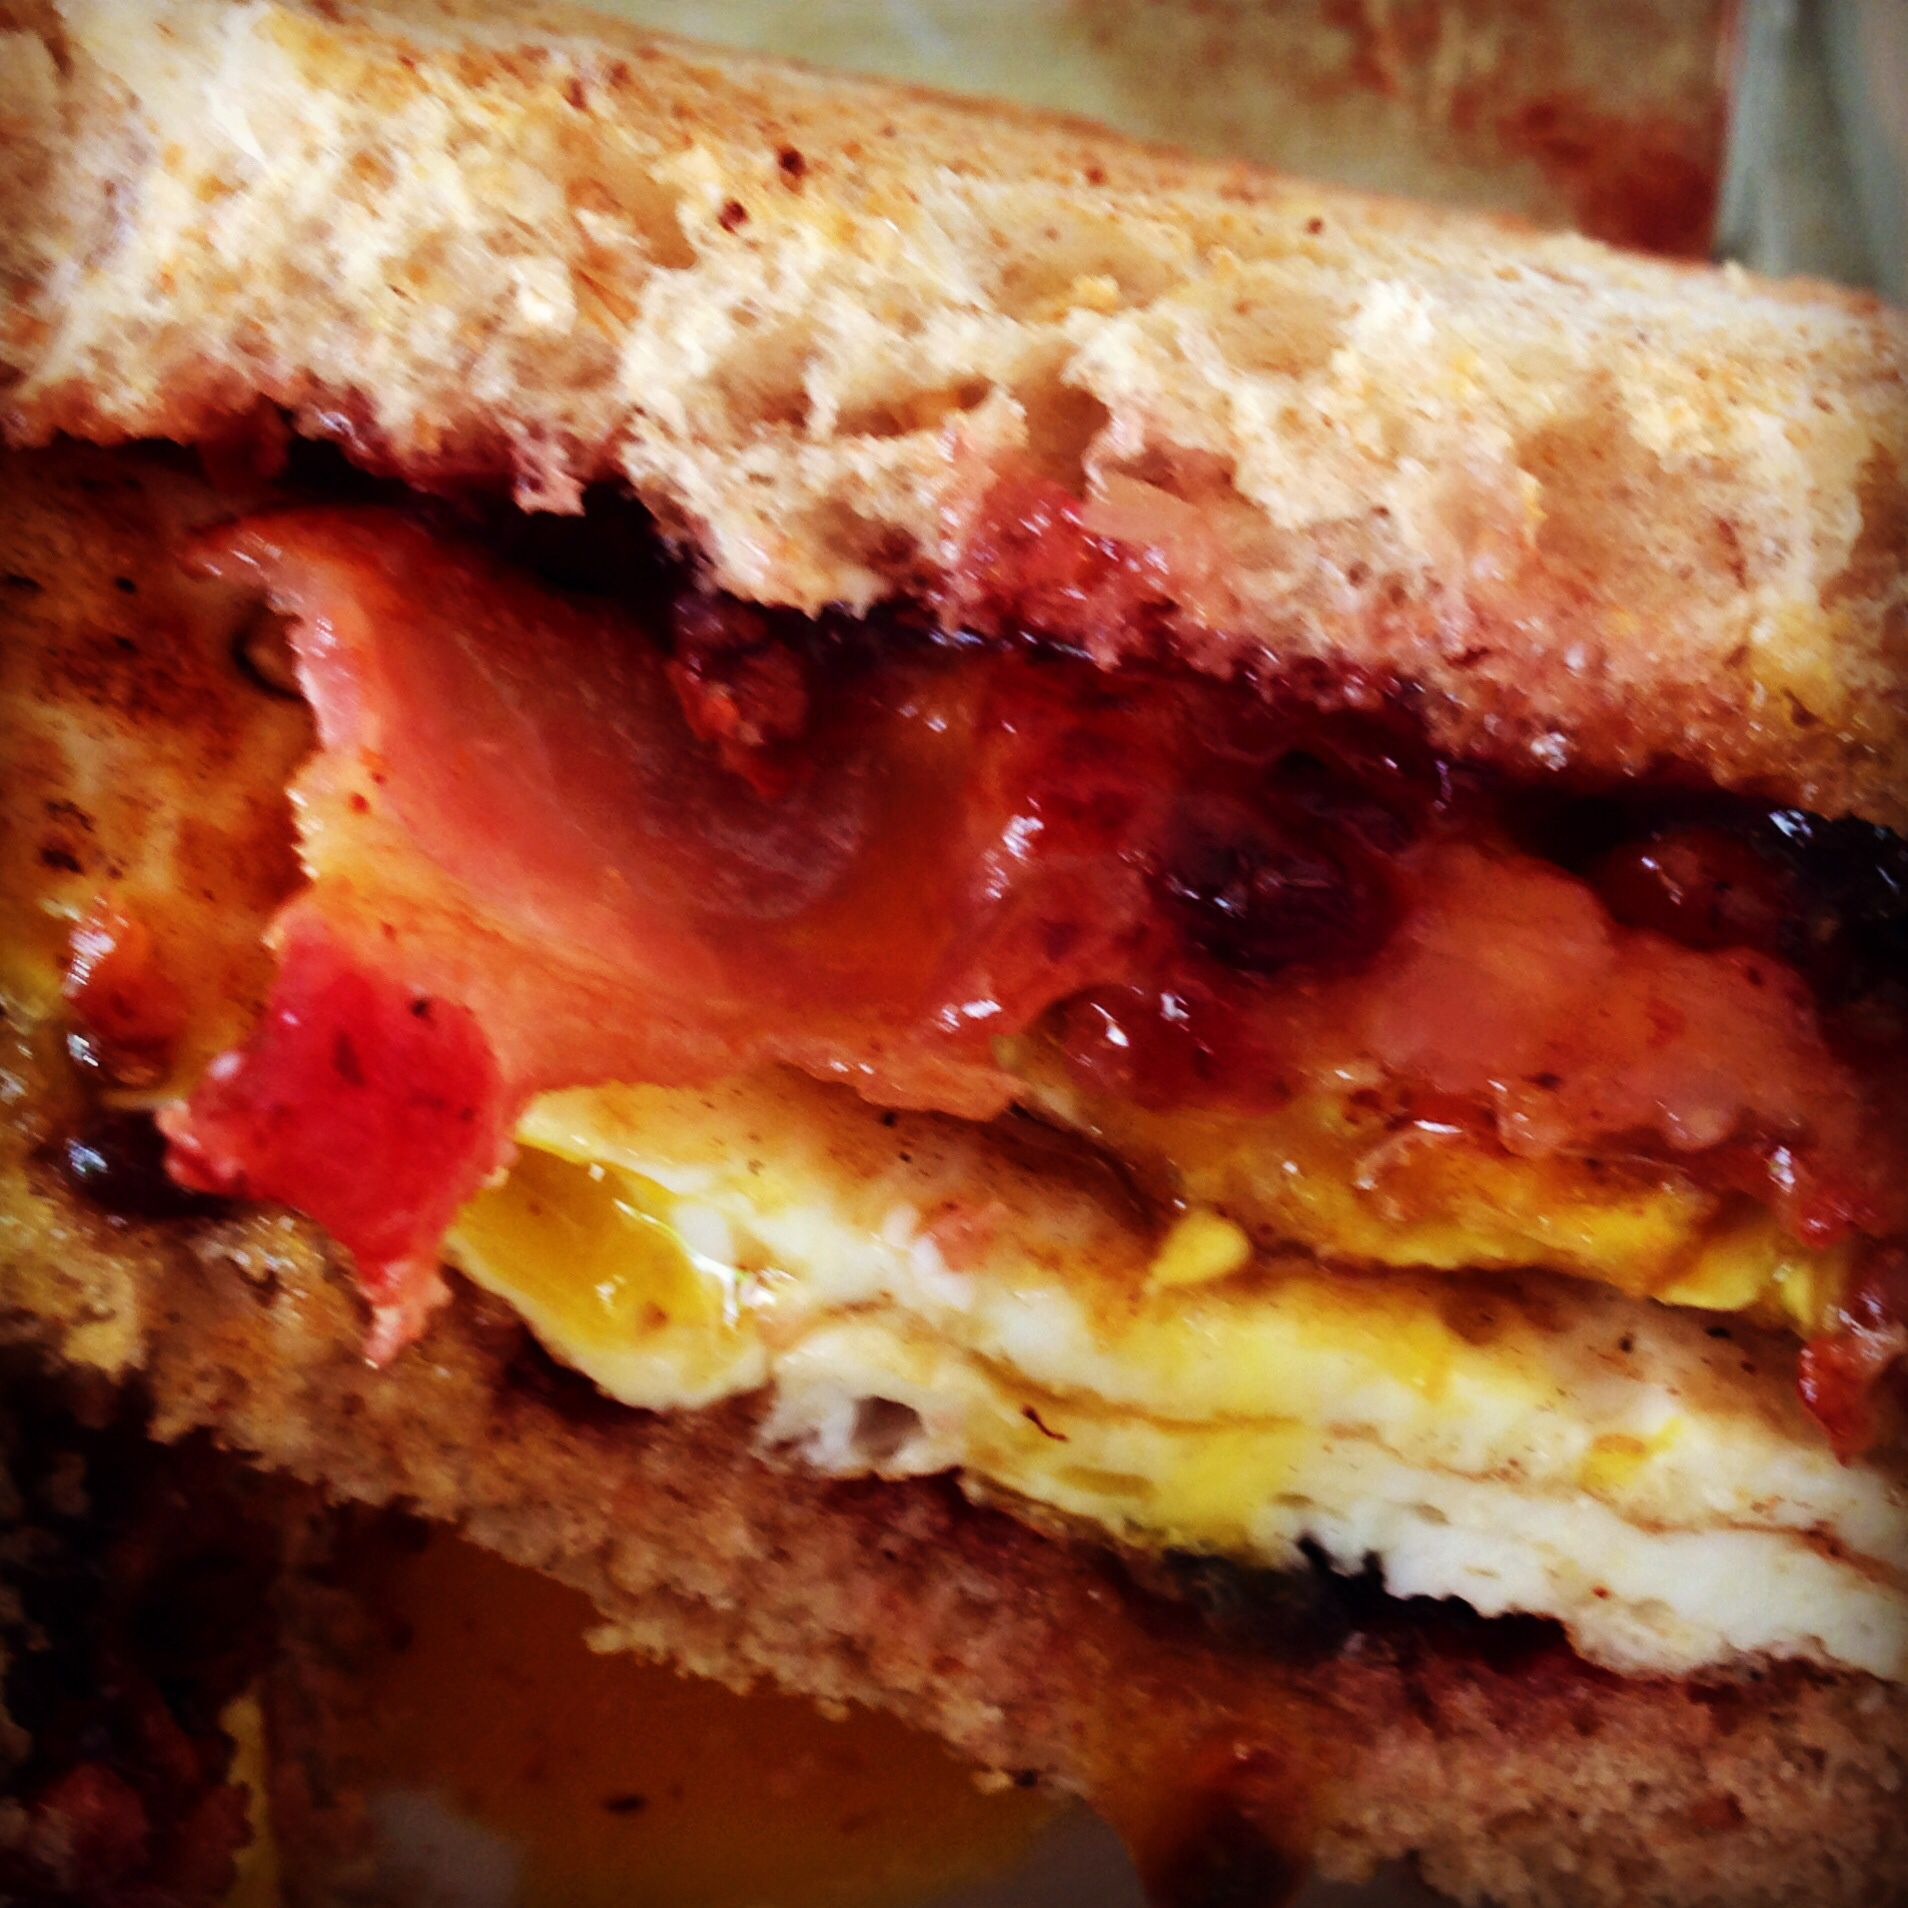 The Maritimer Breakfast Sandwich--           2 over easy eggs, 3 strips bacon, 2 pieces toast, butter and jam on the toast. Put the eggs and bacon between the toast ! It's so simple and so good!!!